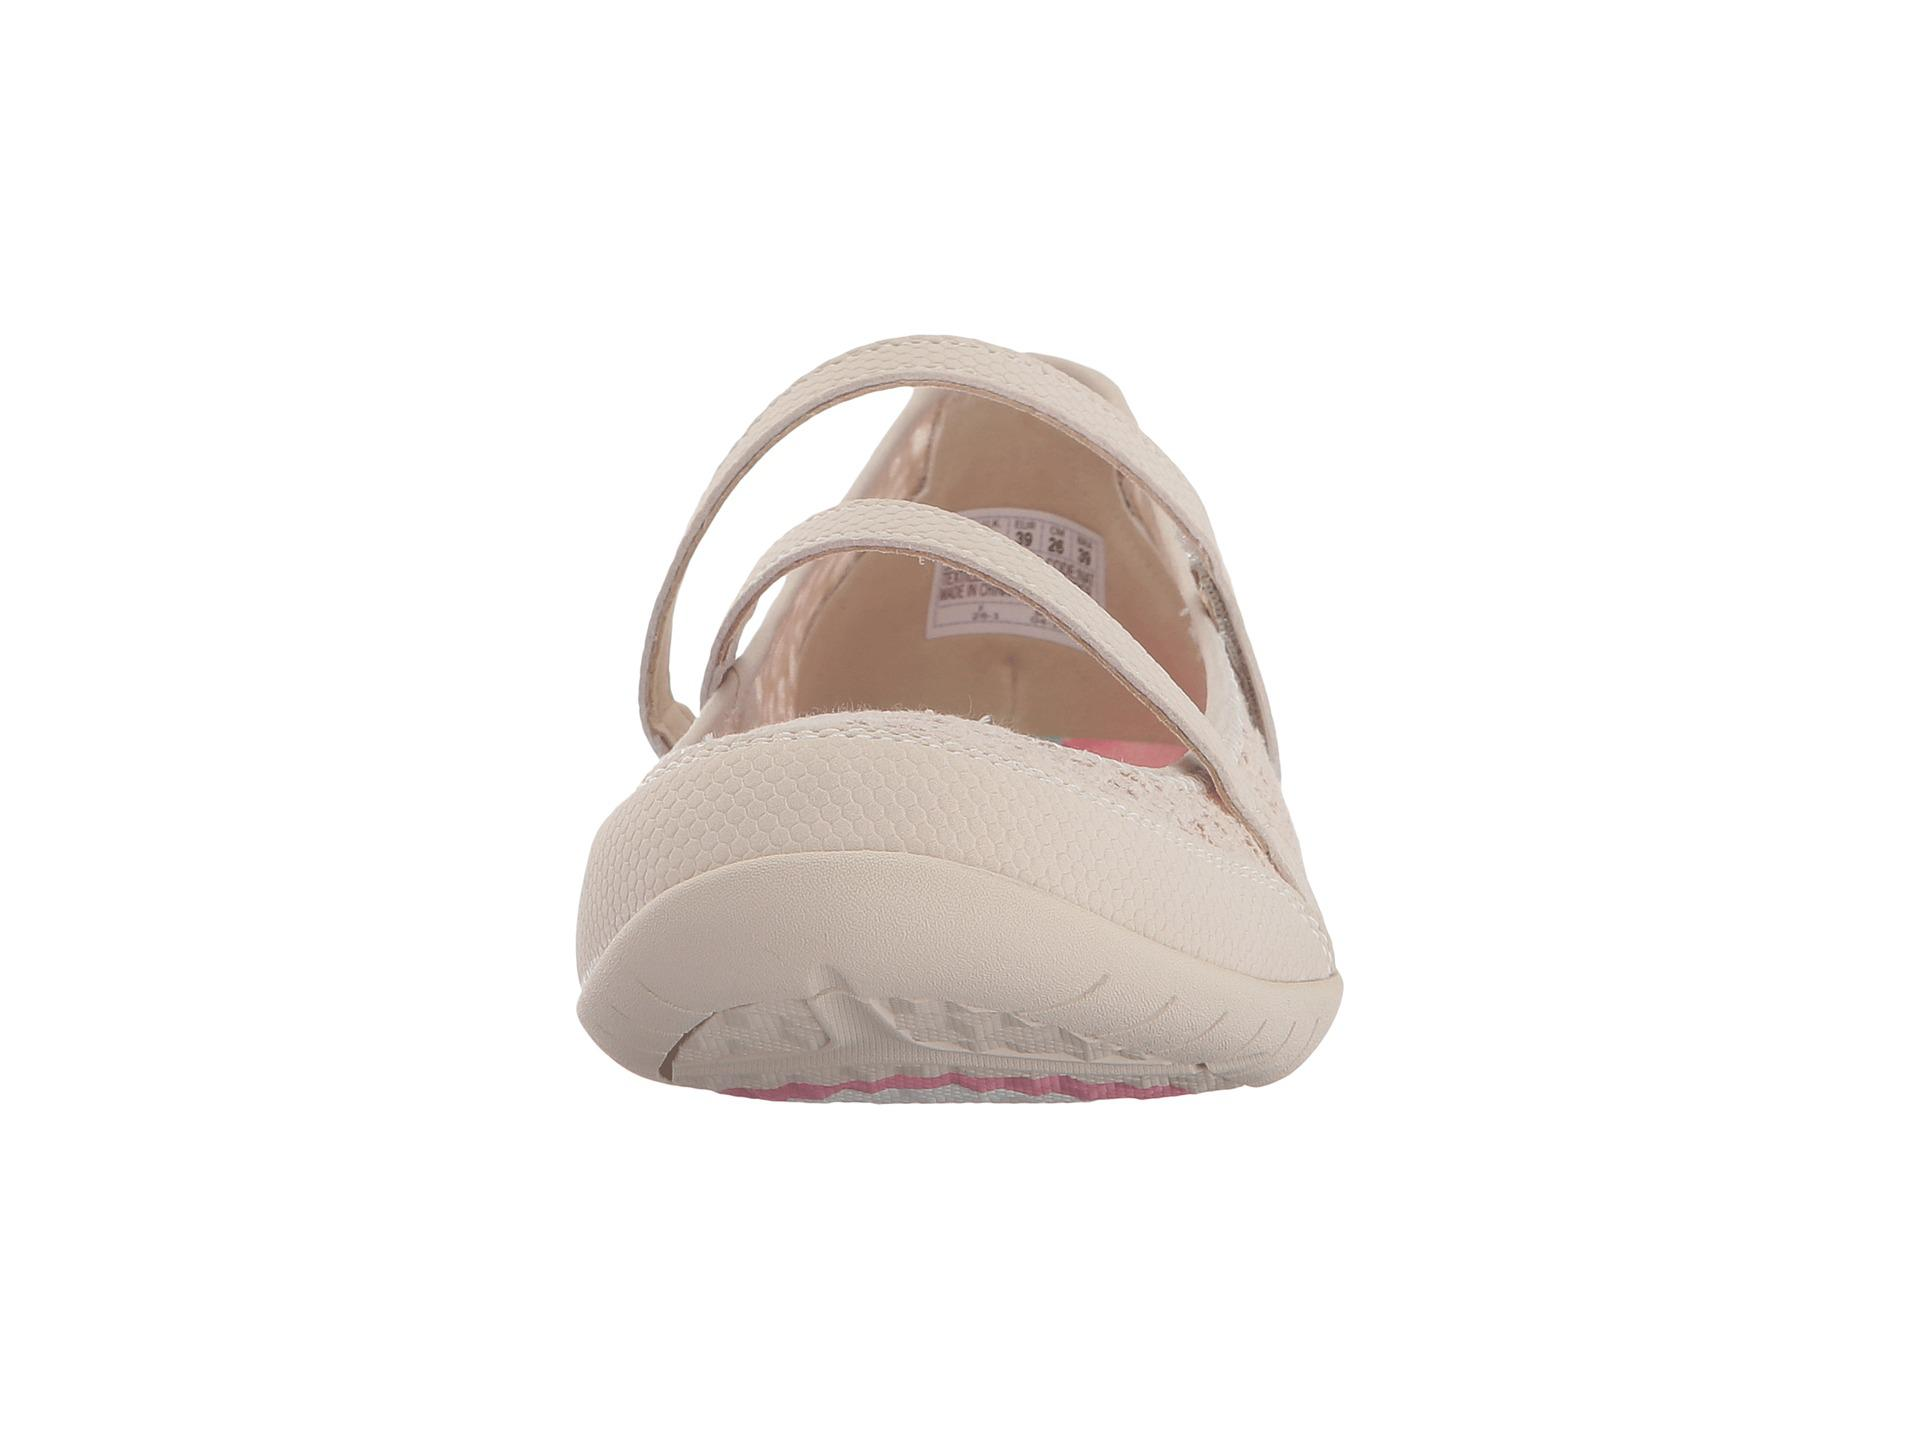 a47587928c1a Lyst - Skechers Atomic - Dainty Lady in Natural